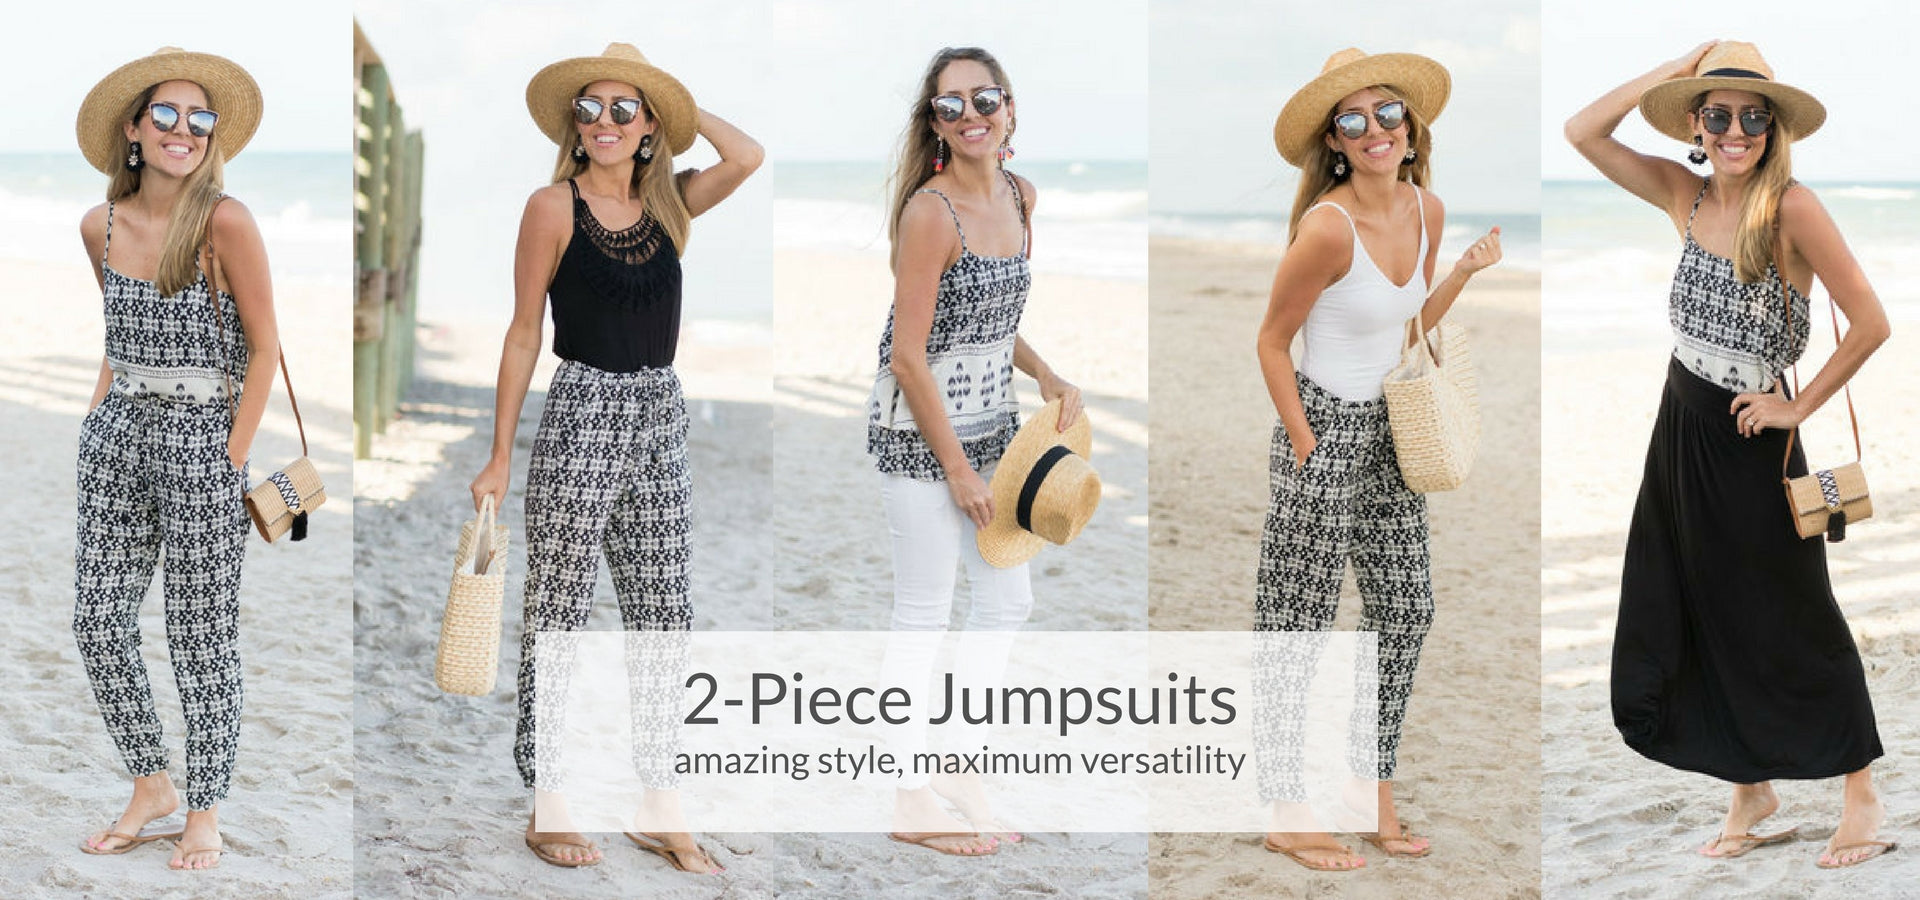 Vacay 2-Piece Jumpsuits and Rompers